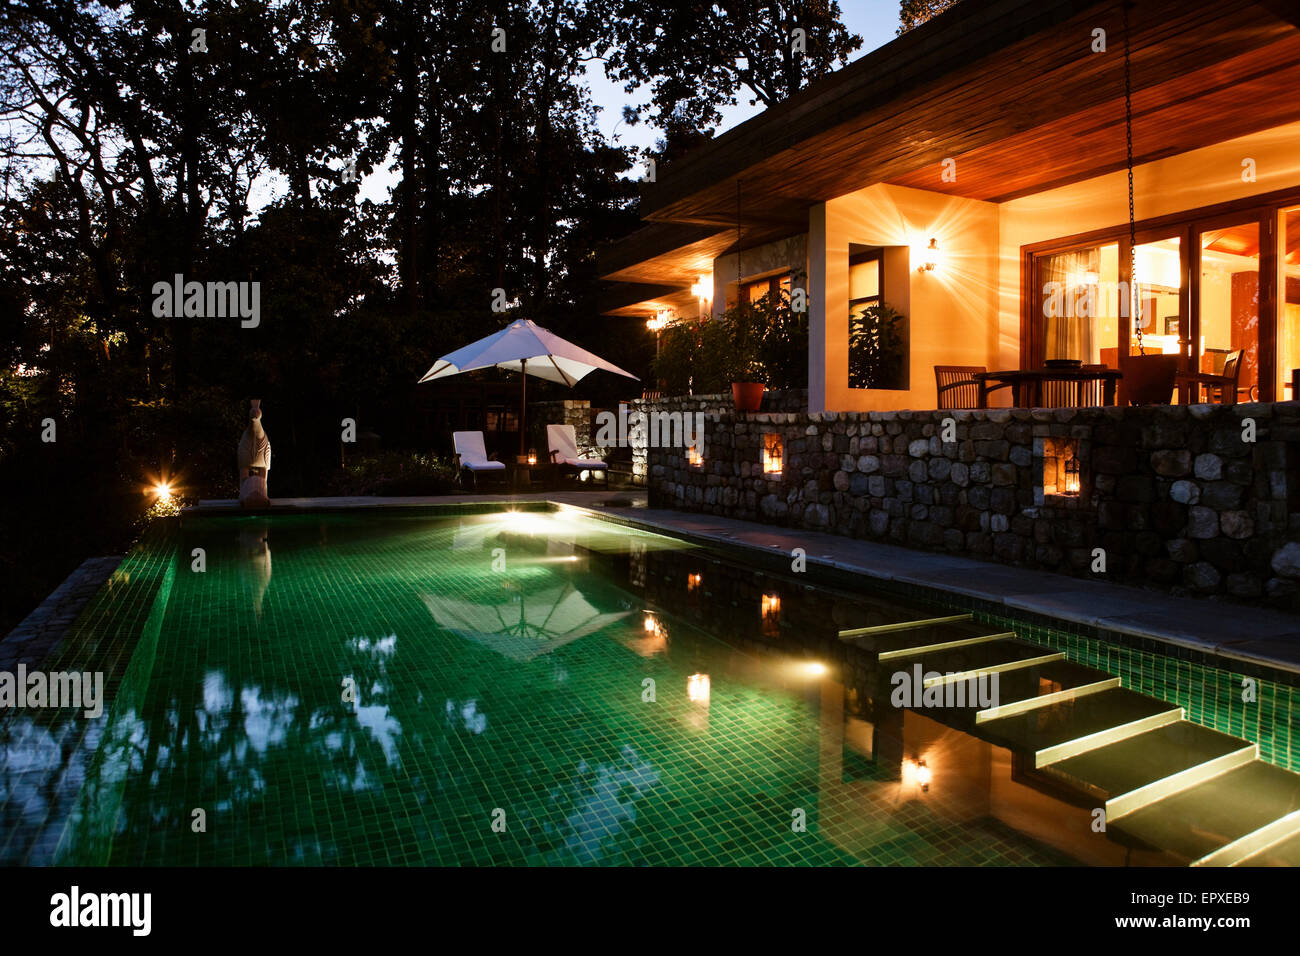 Exterior of the Shivalik Double Room Pool Villa, Ananda in the Himalayas, The Palace Estate, Narendra Nagar, Tehri - Stock Image